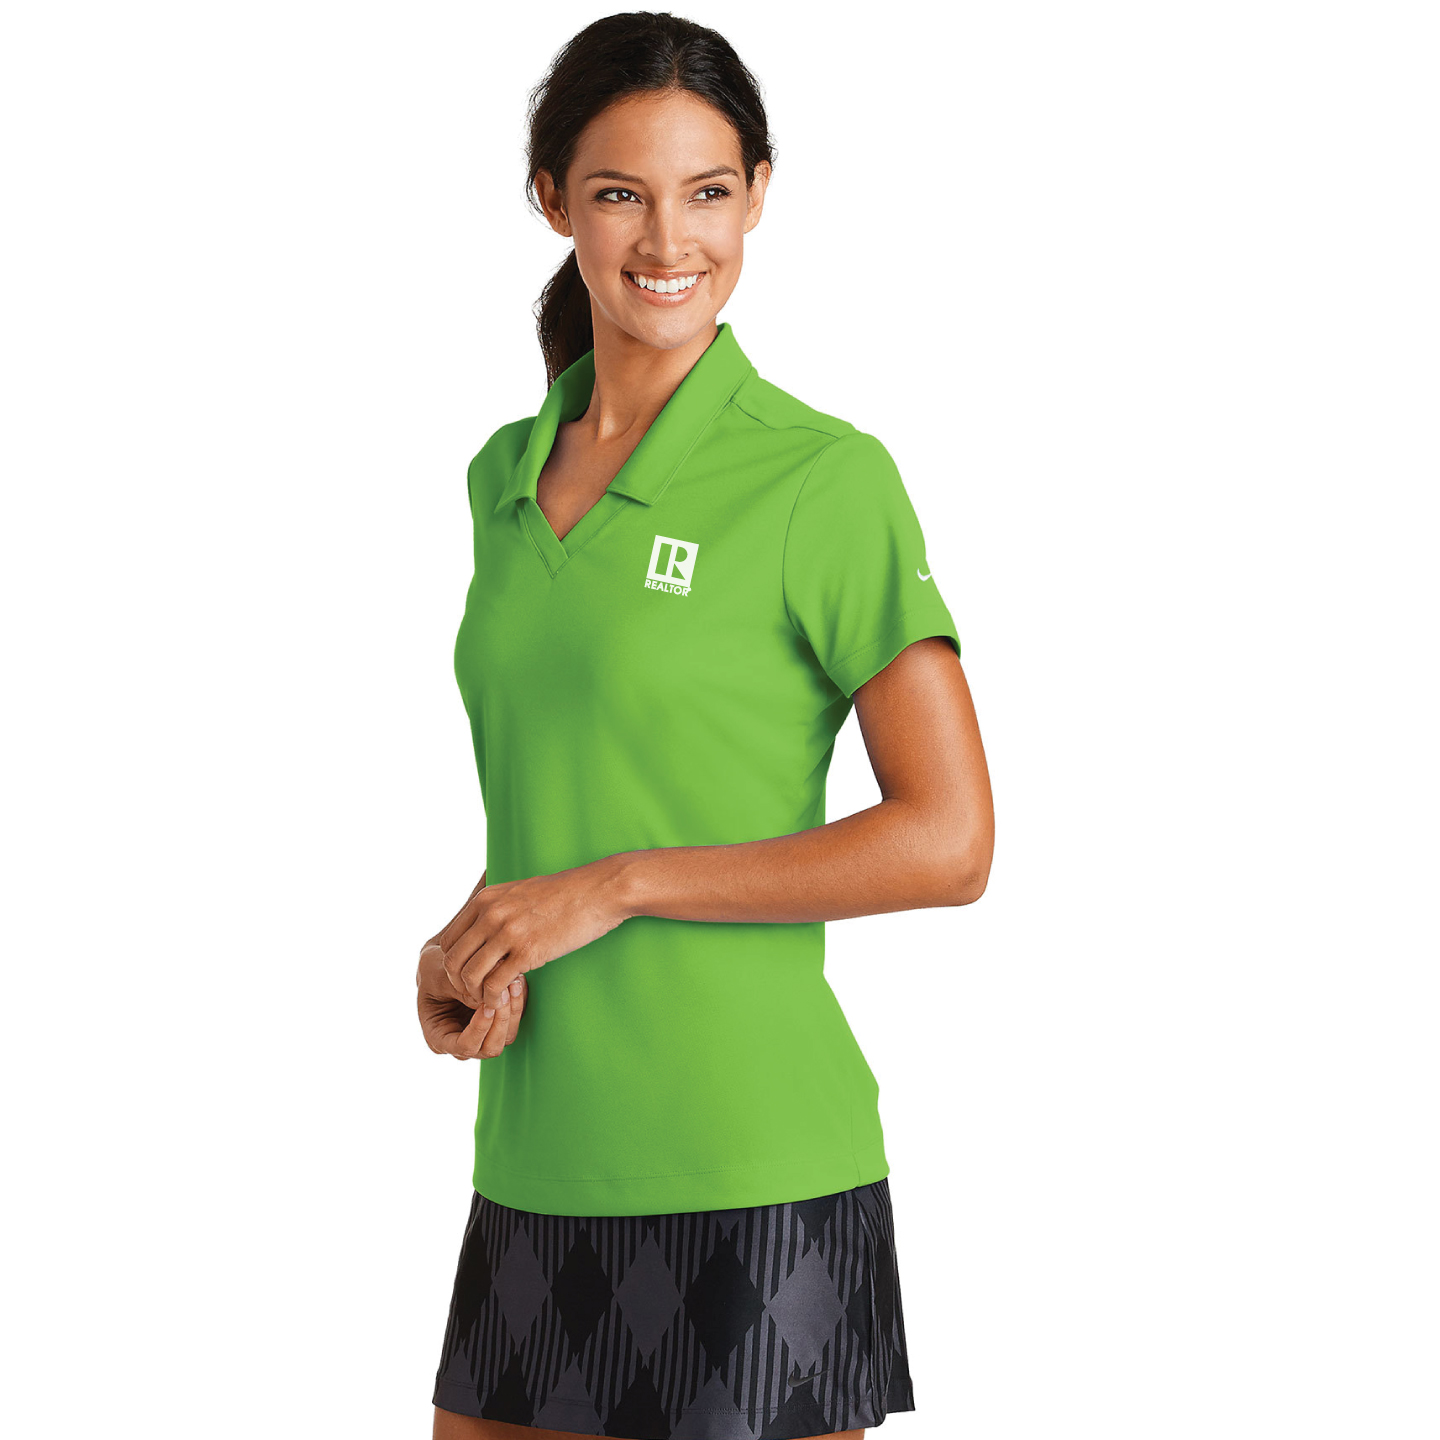 Nike Golf - Ladies Dri-FIT Micro Pique Polo Golfs, Shirts, Collared, Polos, Plackets